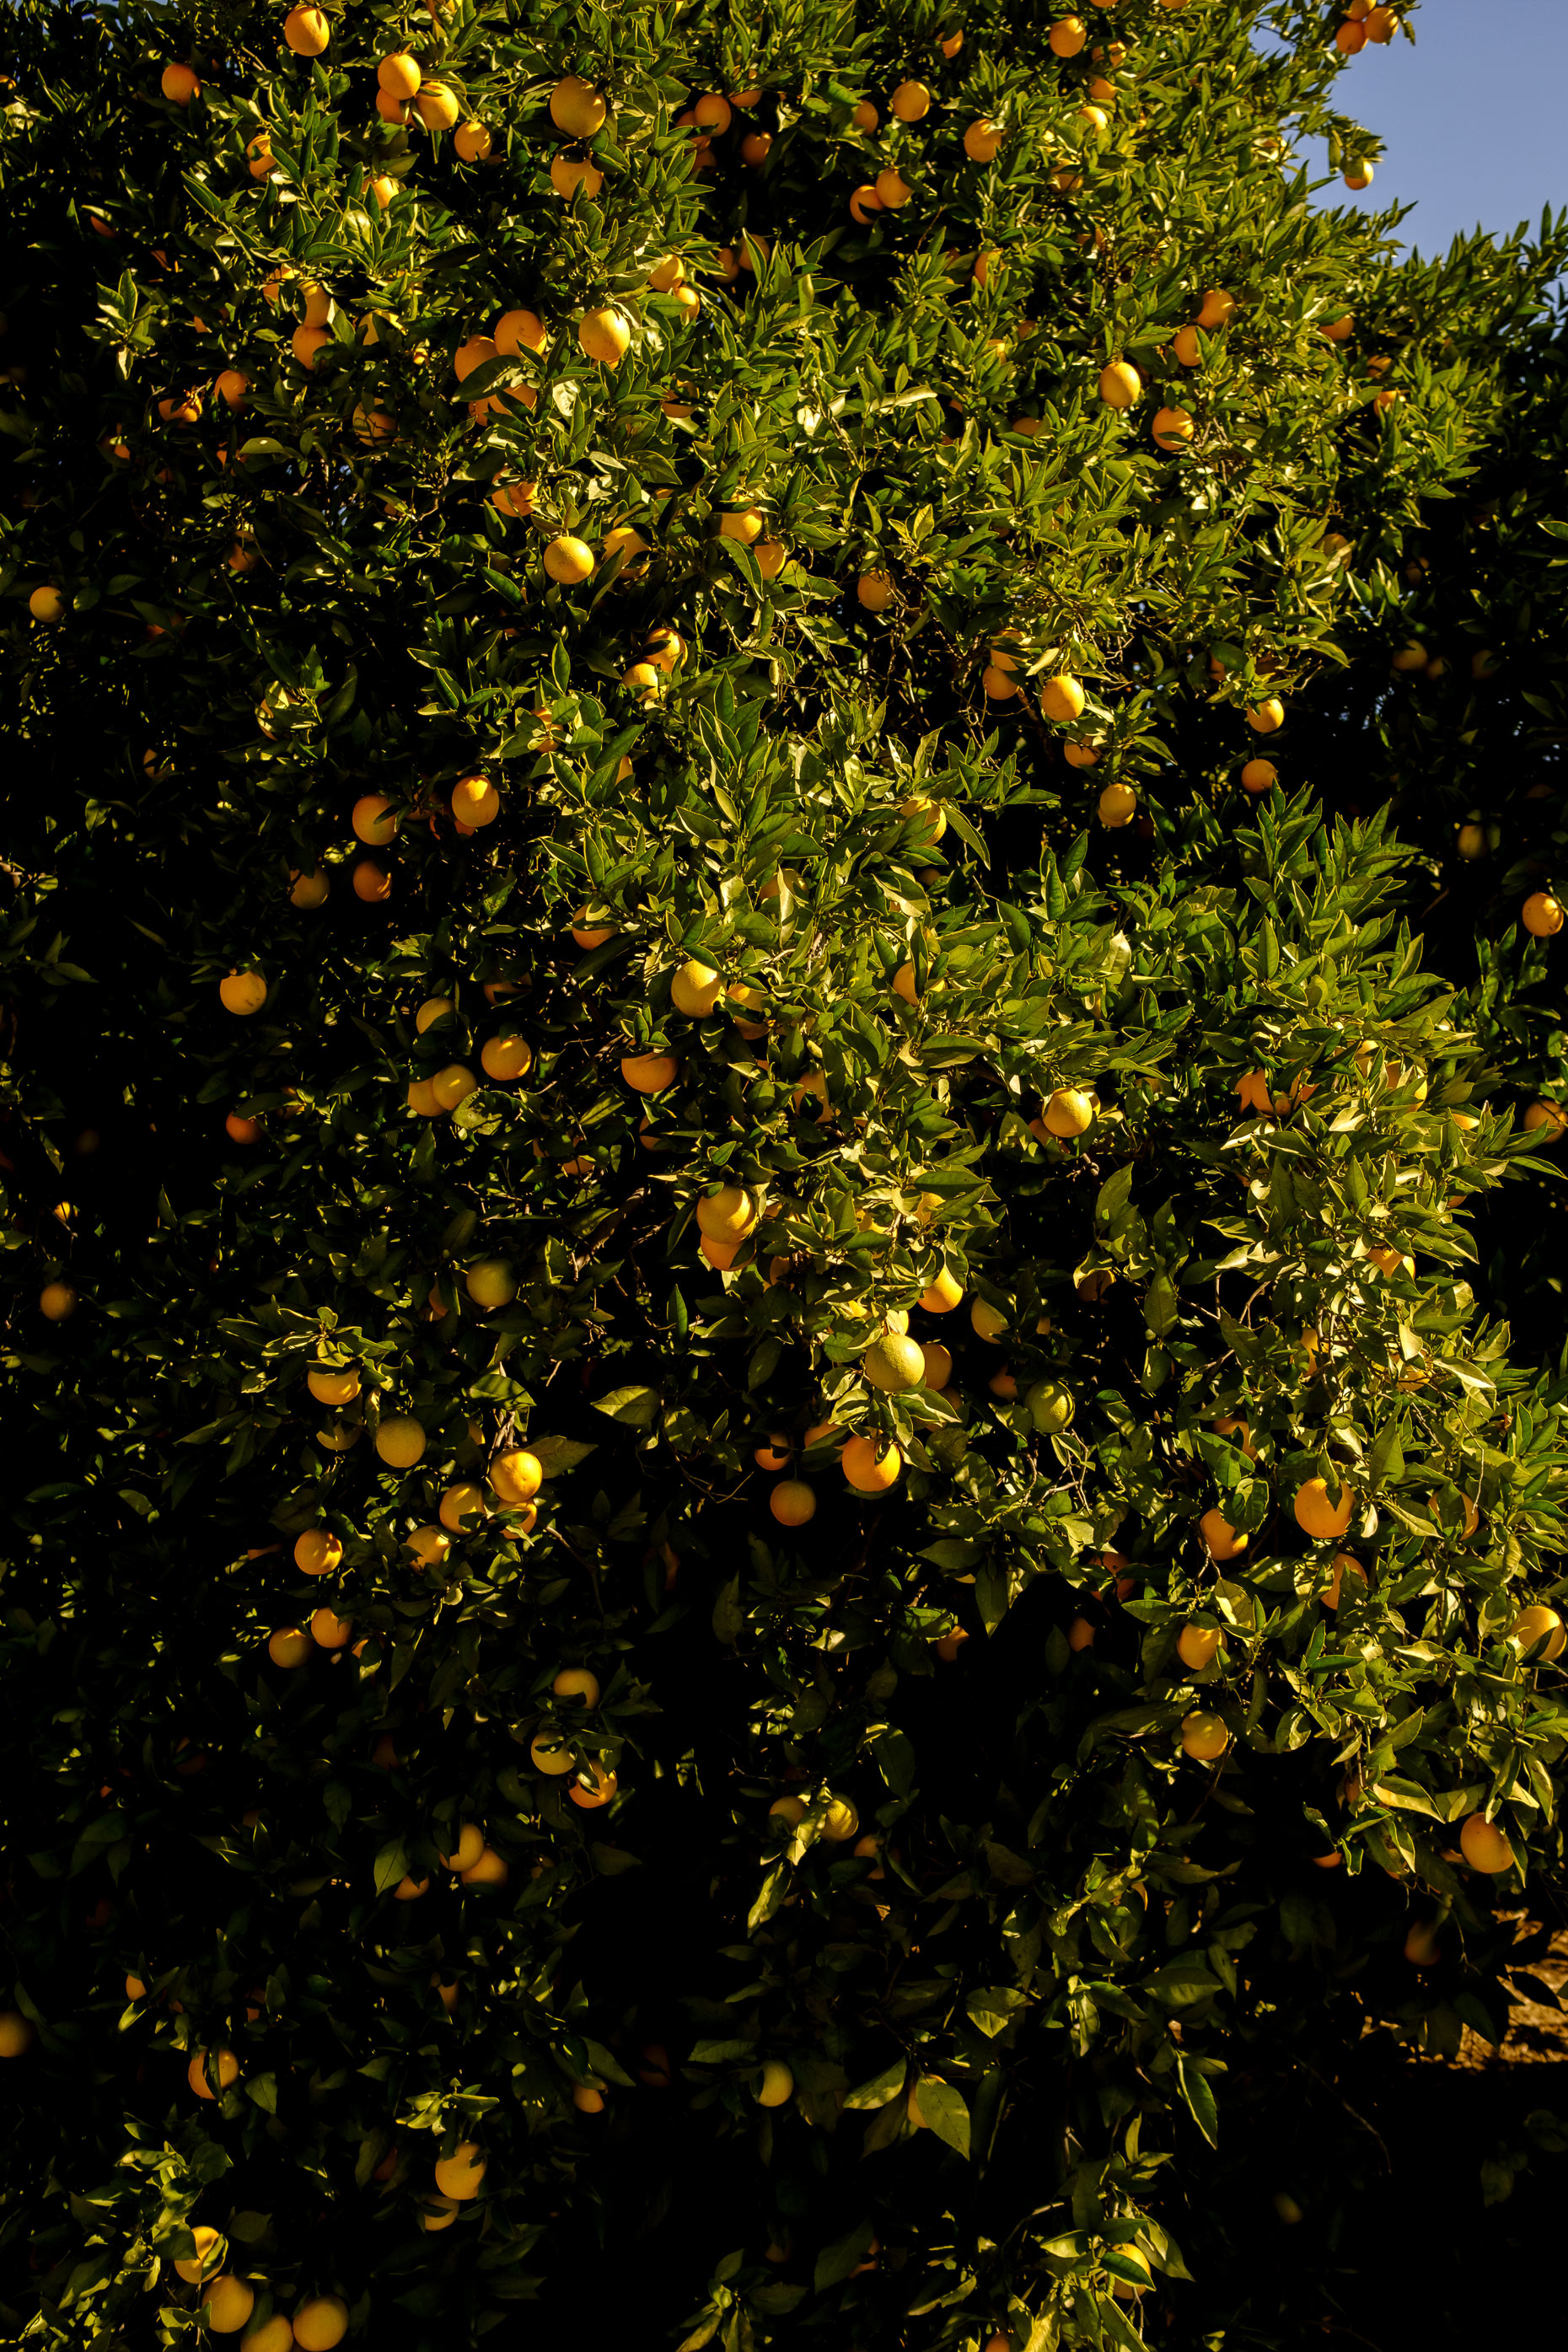 Oranges by London commercial photographer Andy Smith